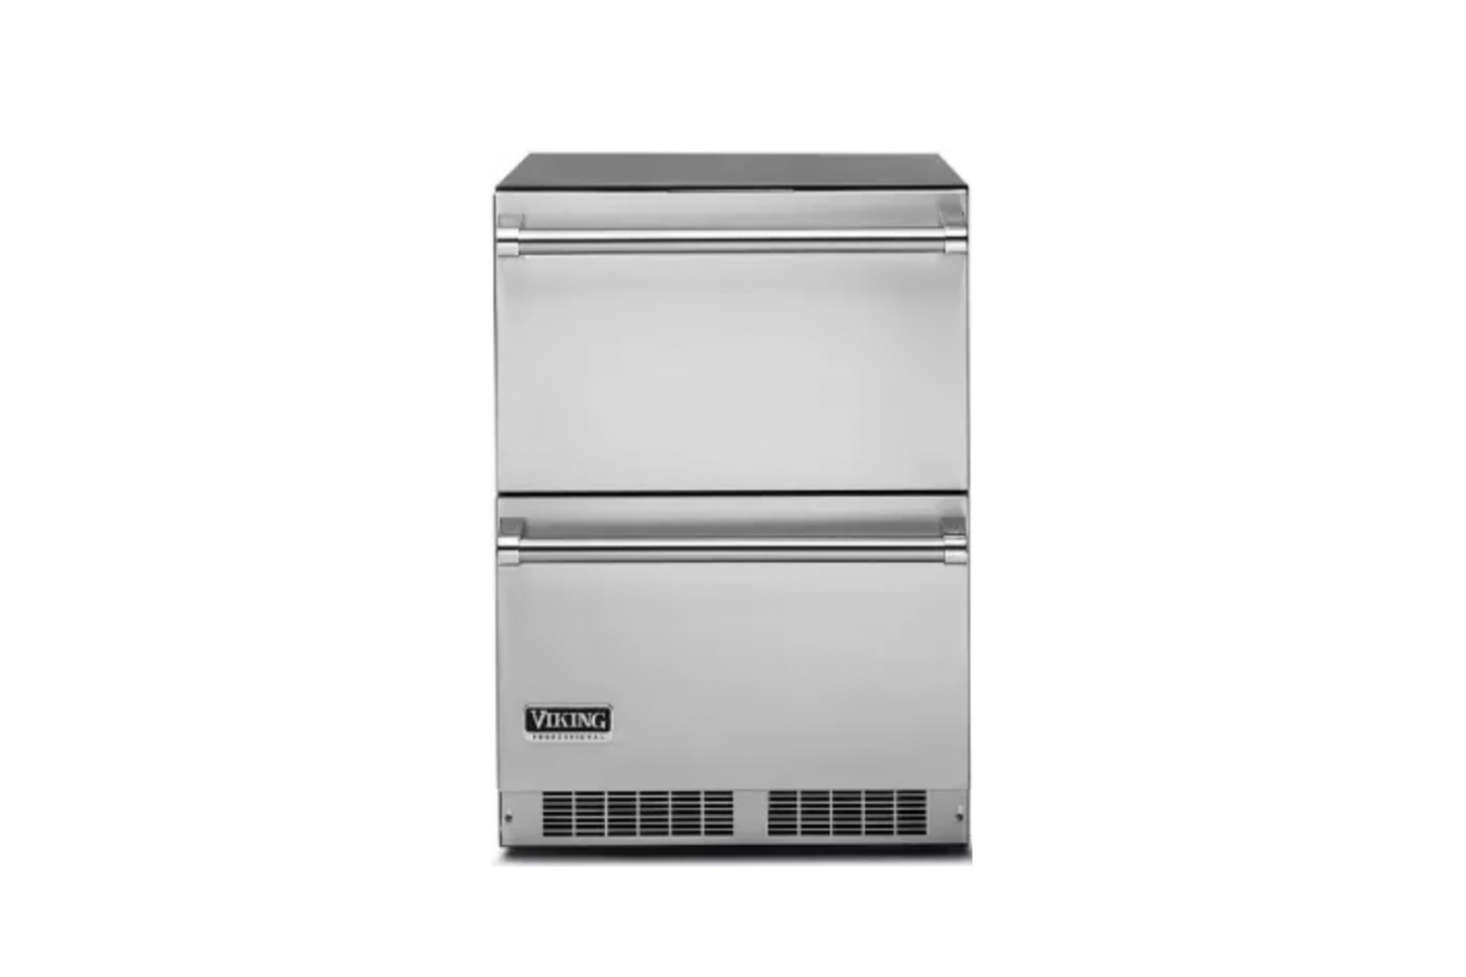 The Viking 5 Series (VDUI50DSS)  Inch Undercounter Refrigerator Drawers are $3,499 at AJ Madison.